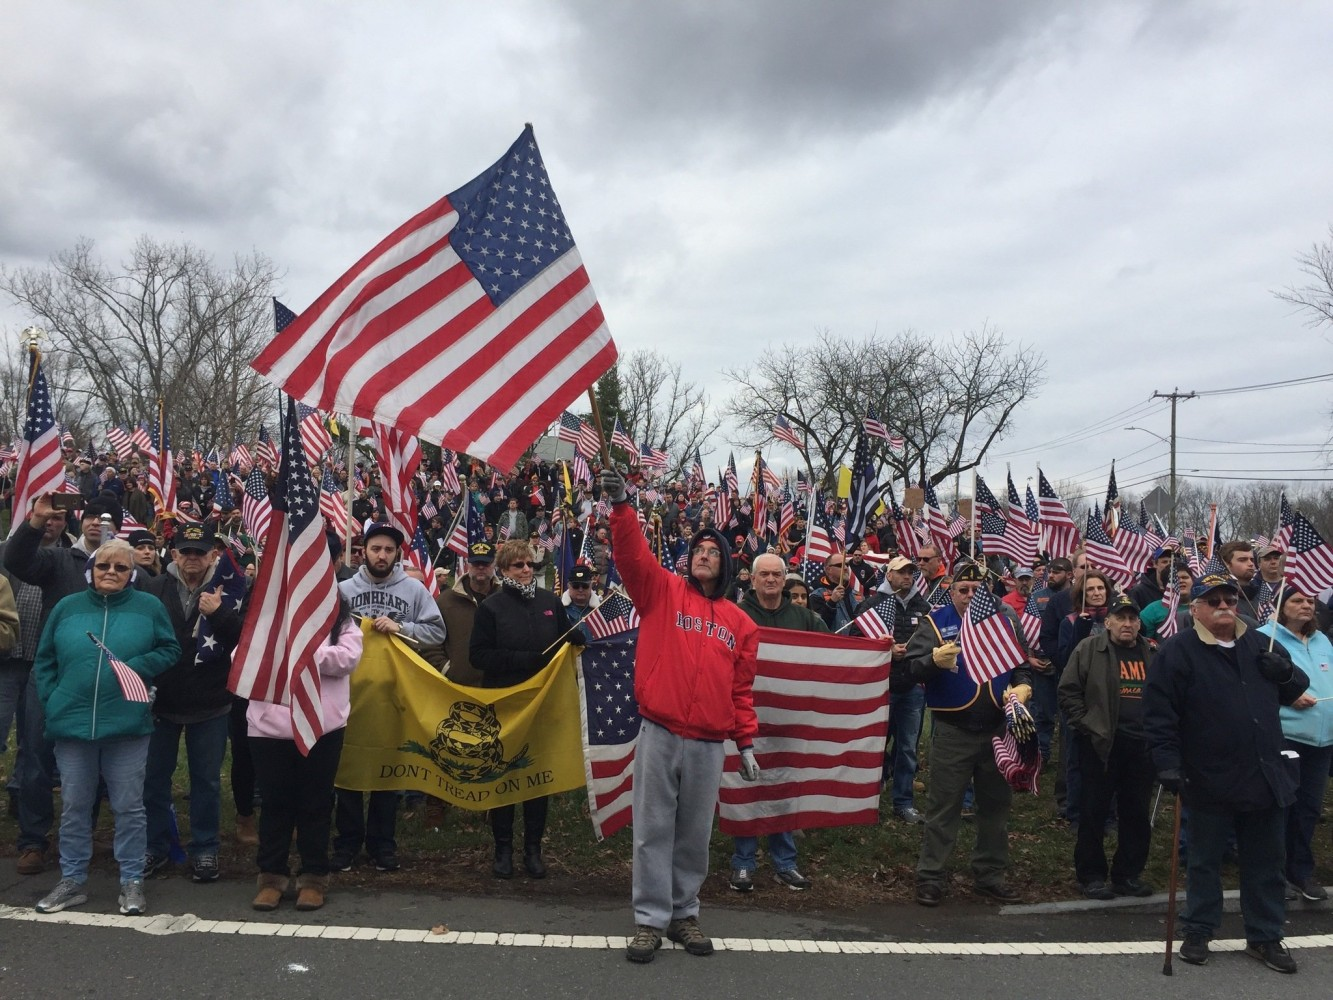 A demonstration at Hampshire College called for the school to reverse a decision to stop flying the American flag, on Nov 27, 2016.